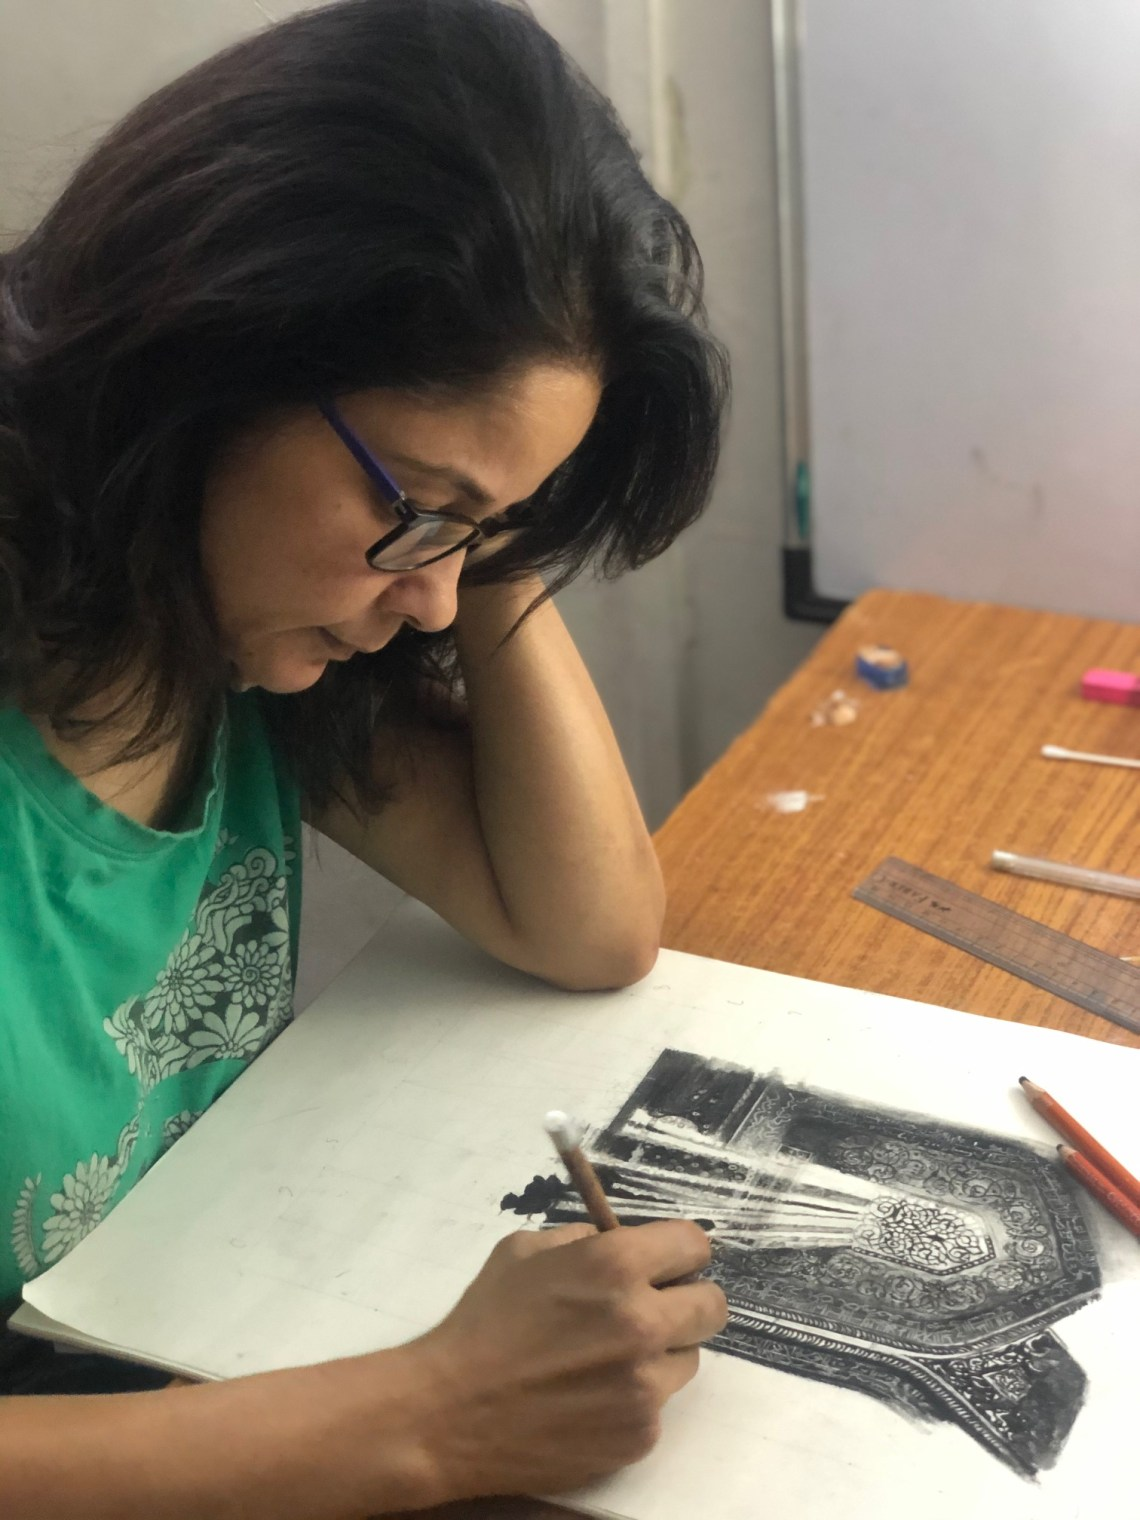 """Nalini Dhir works on her artwork on day 1 of lockdown for """"Art in the time of corona - hope and positivity through creativity"""""""